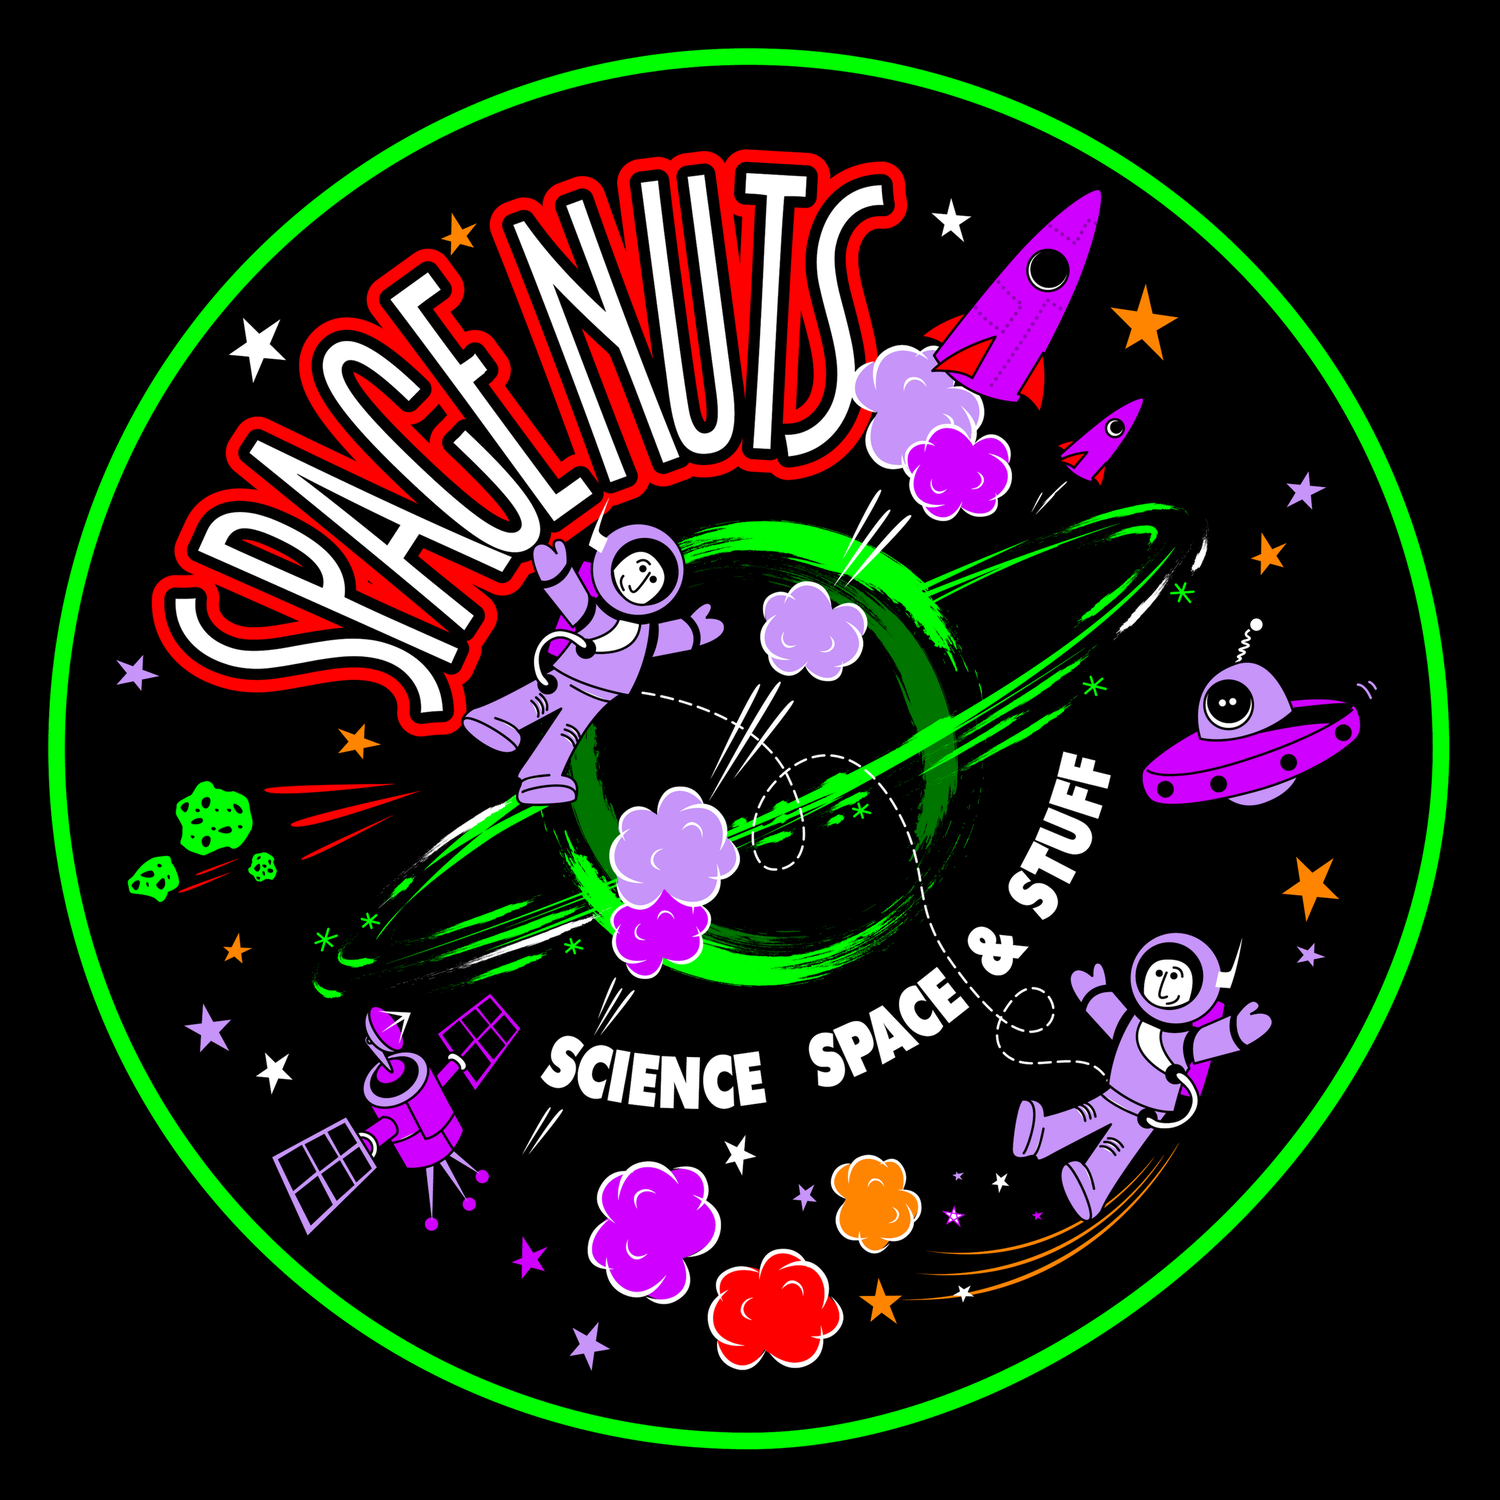 Space Nuts | Astronomy, Space and Science News